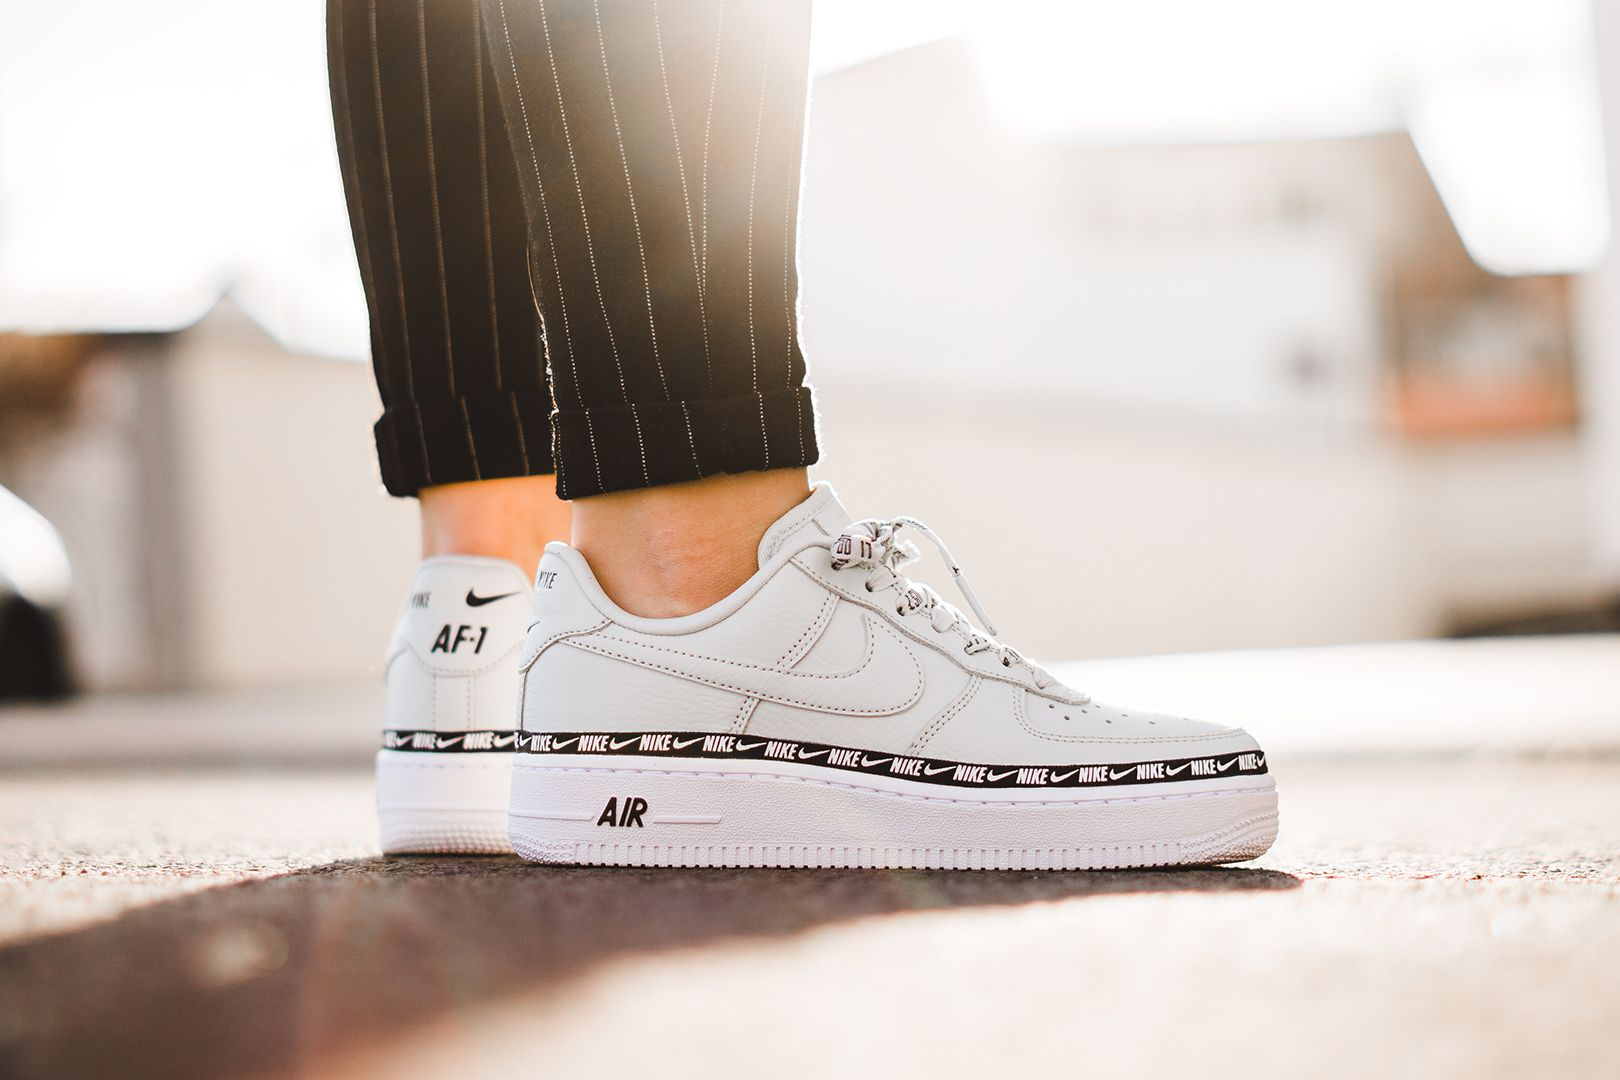 online retailer 0bc6c c9b12 The Nike WMNS Air Force 1  07 SE Premium is available in our online shop.